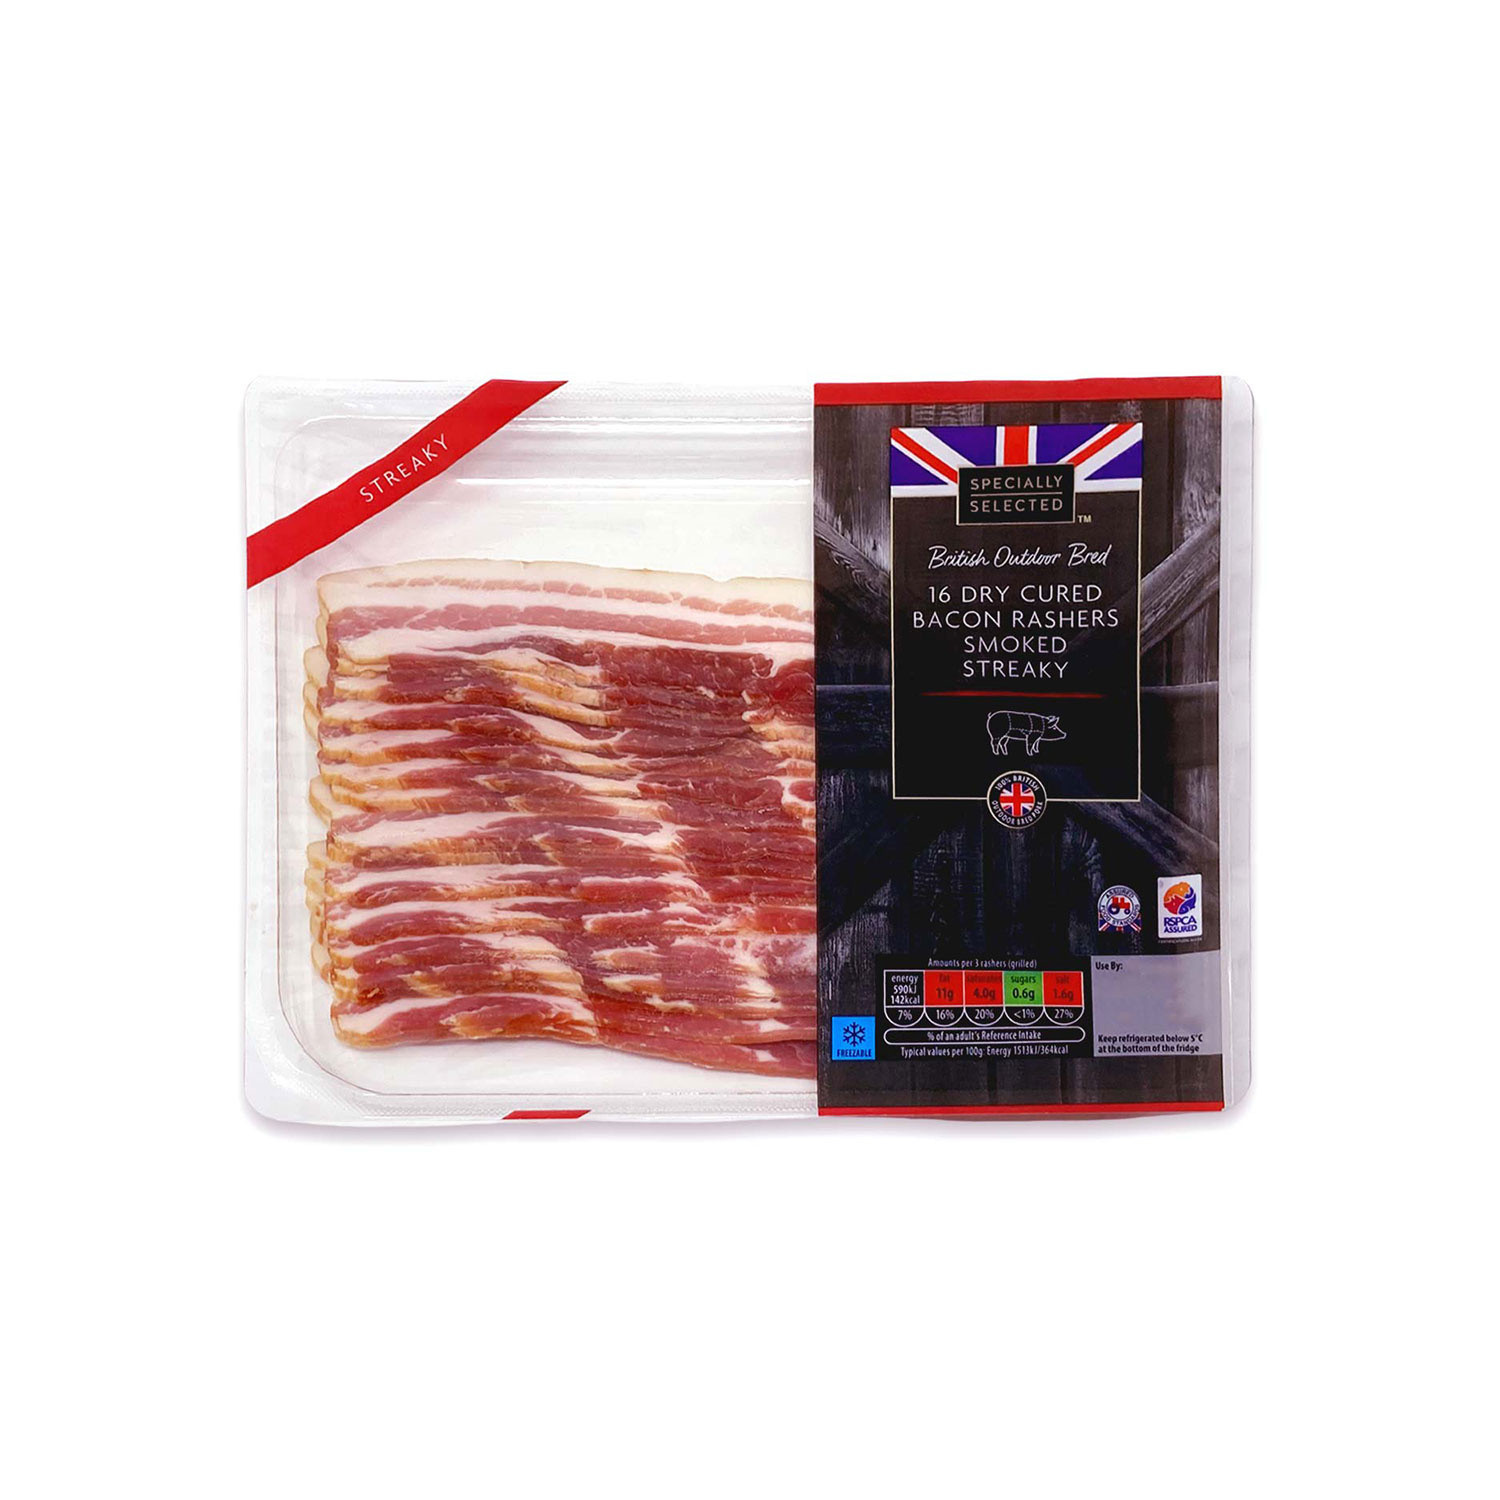 British Bacon Rashers Smoked Streaky